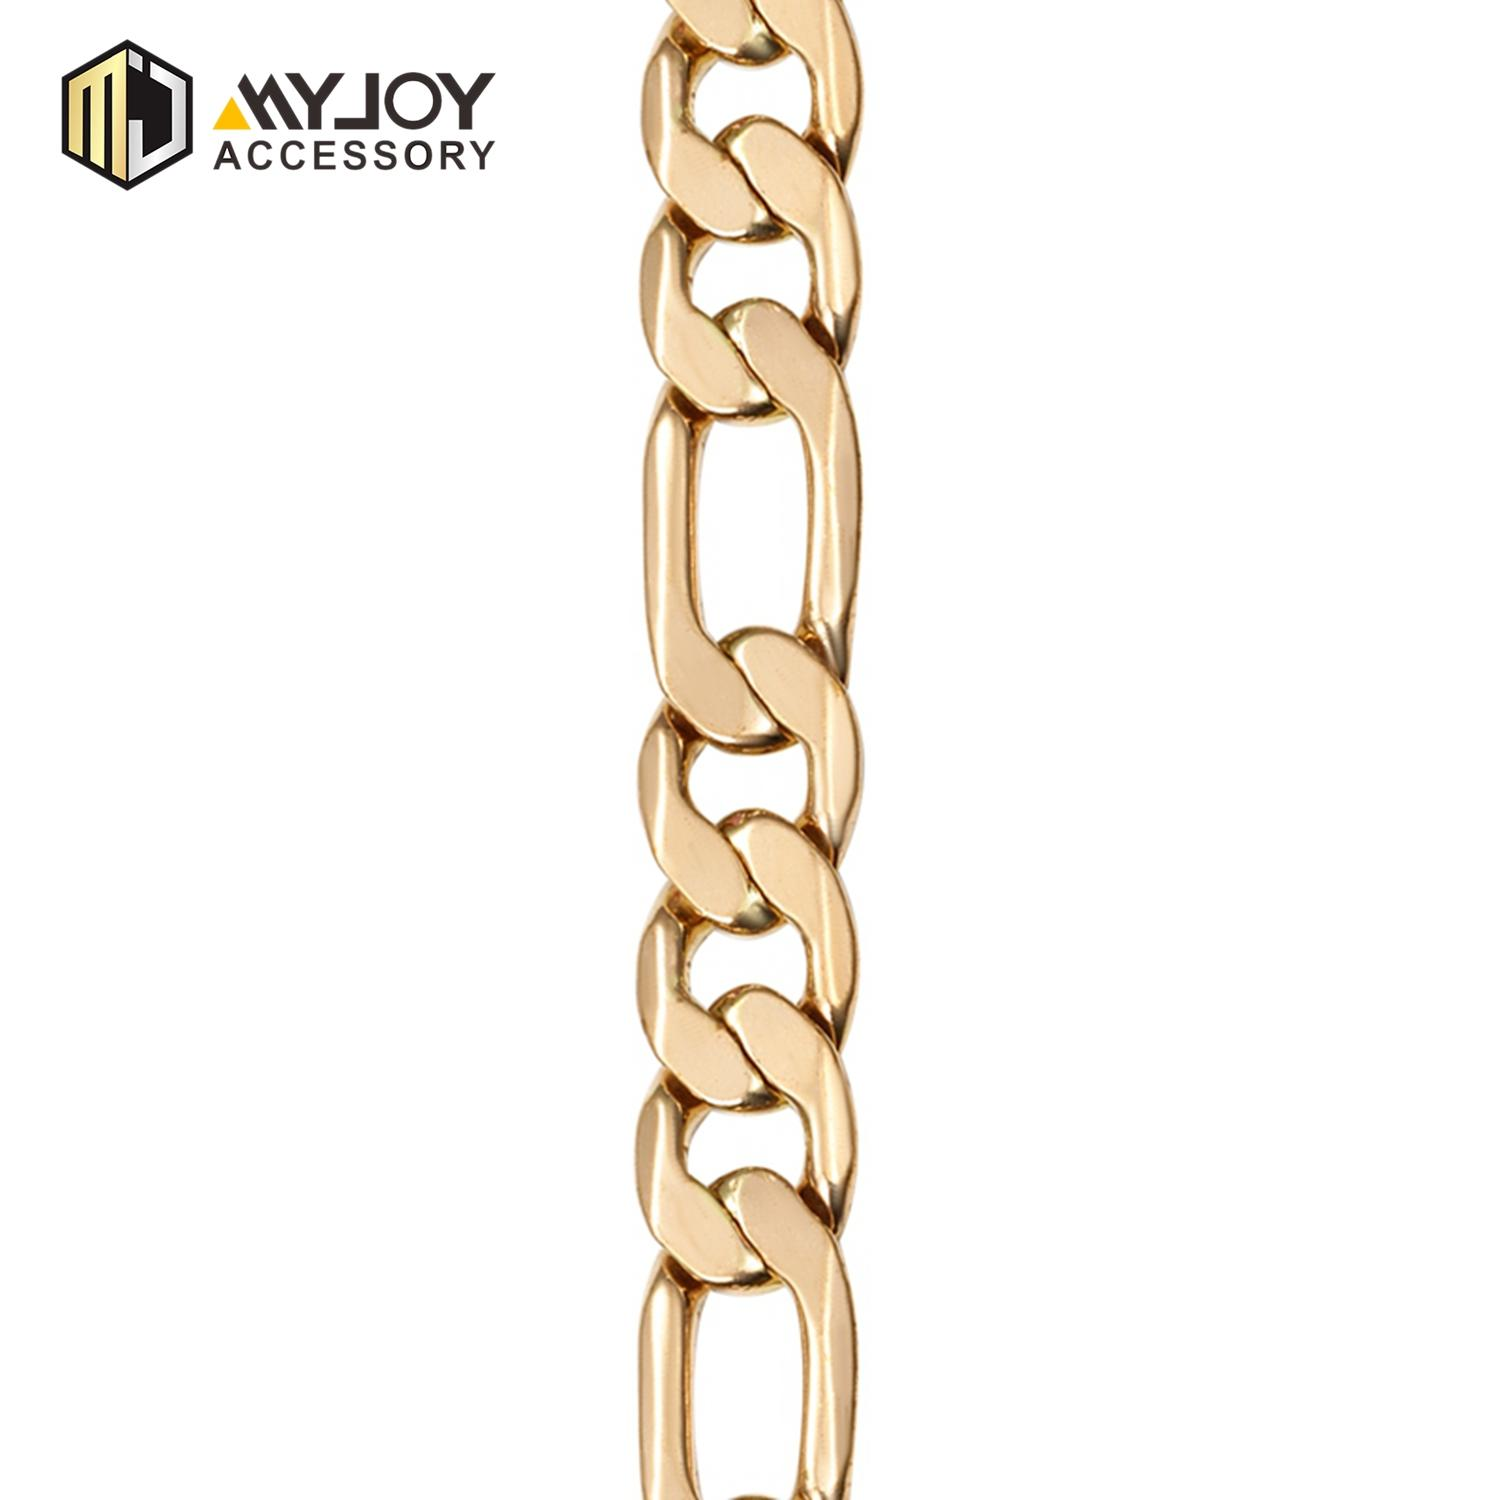 MYJOY Custom handbag chain strap stylish for handbag